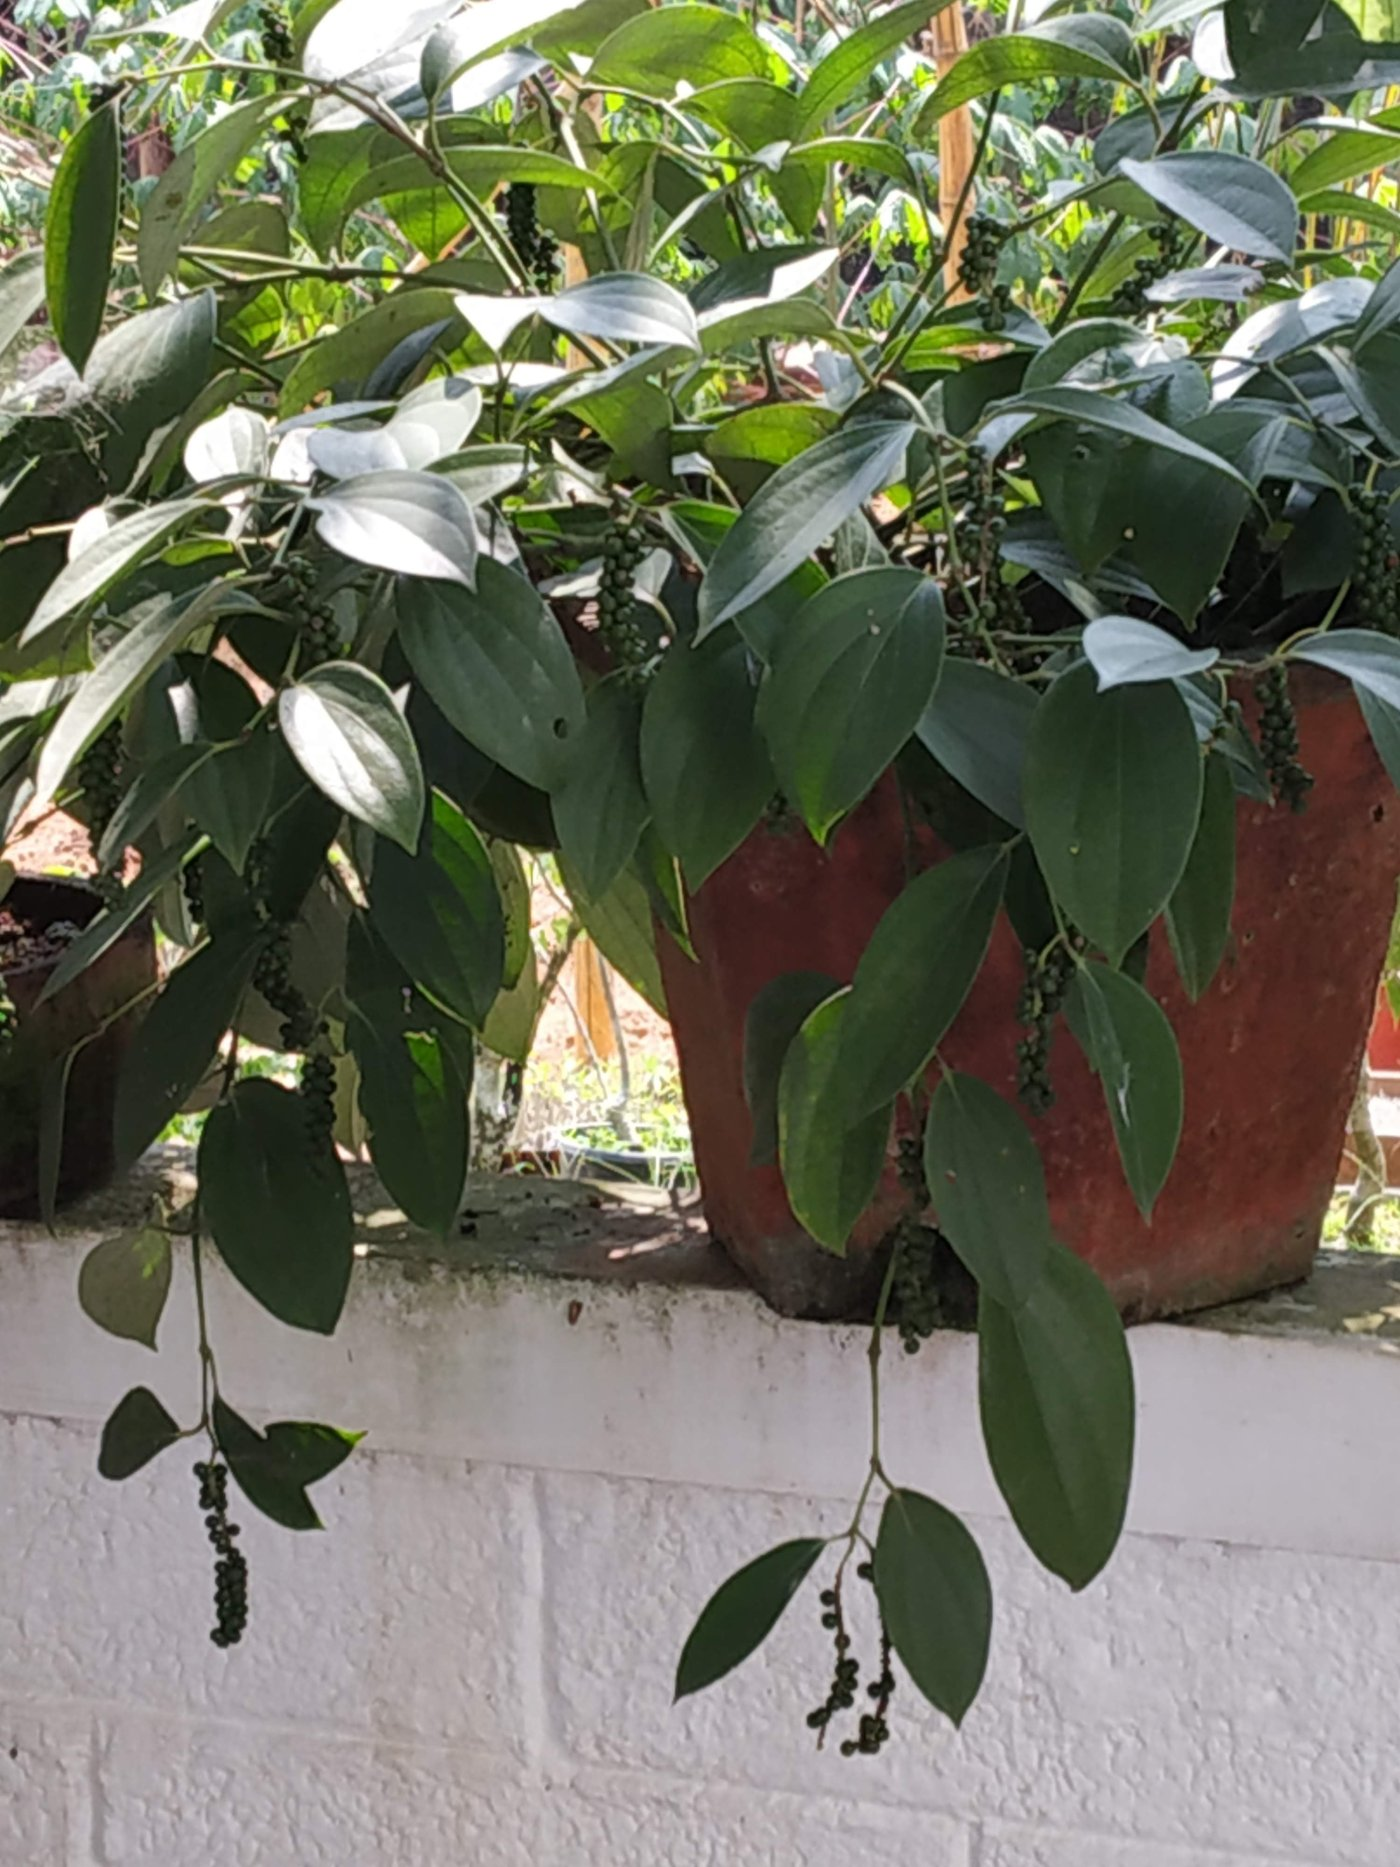 Keep the bush pepper plants in shade for better yields.